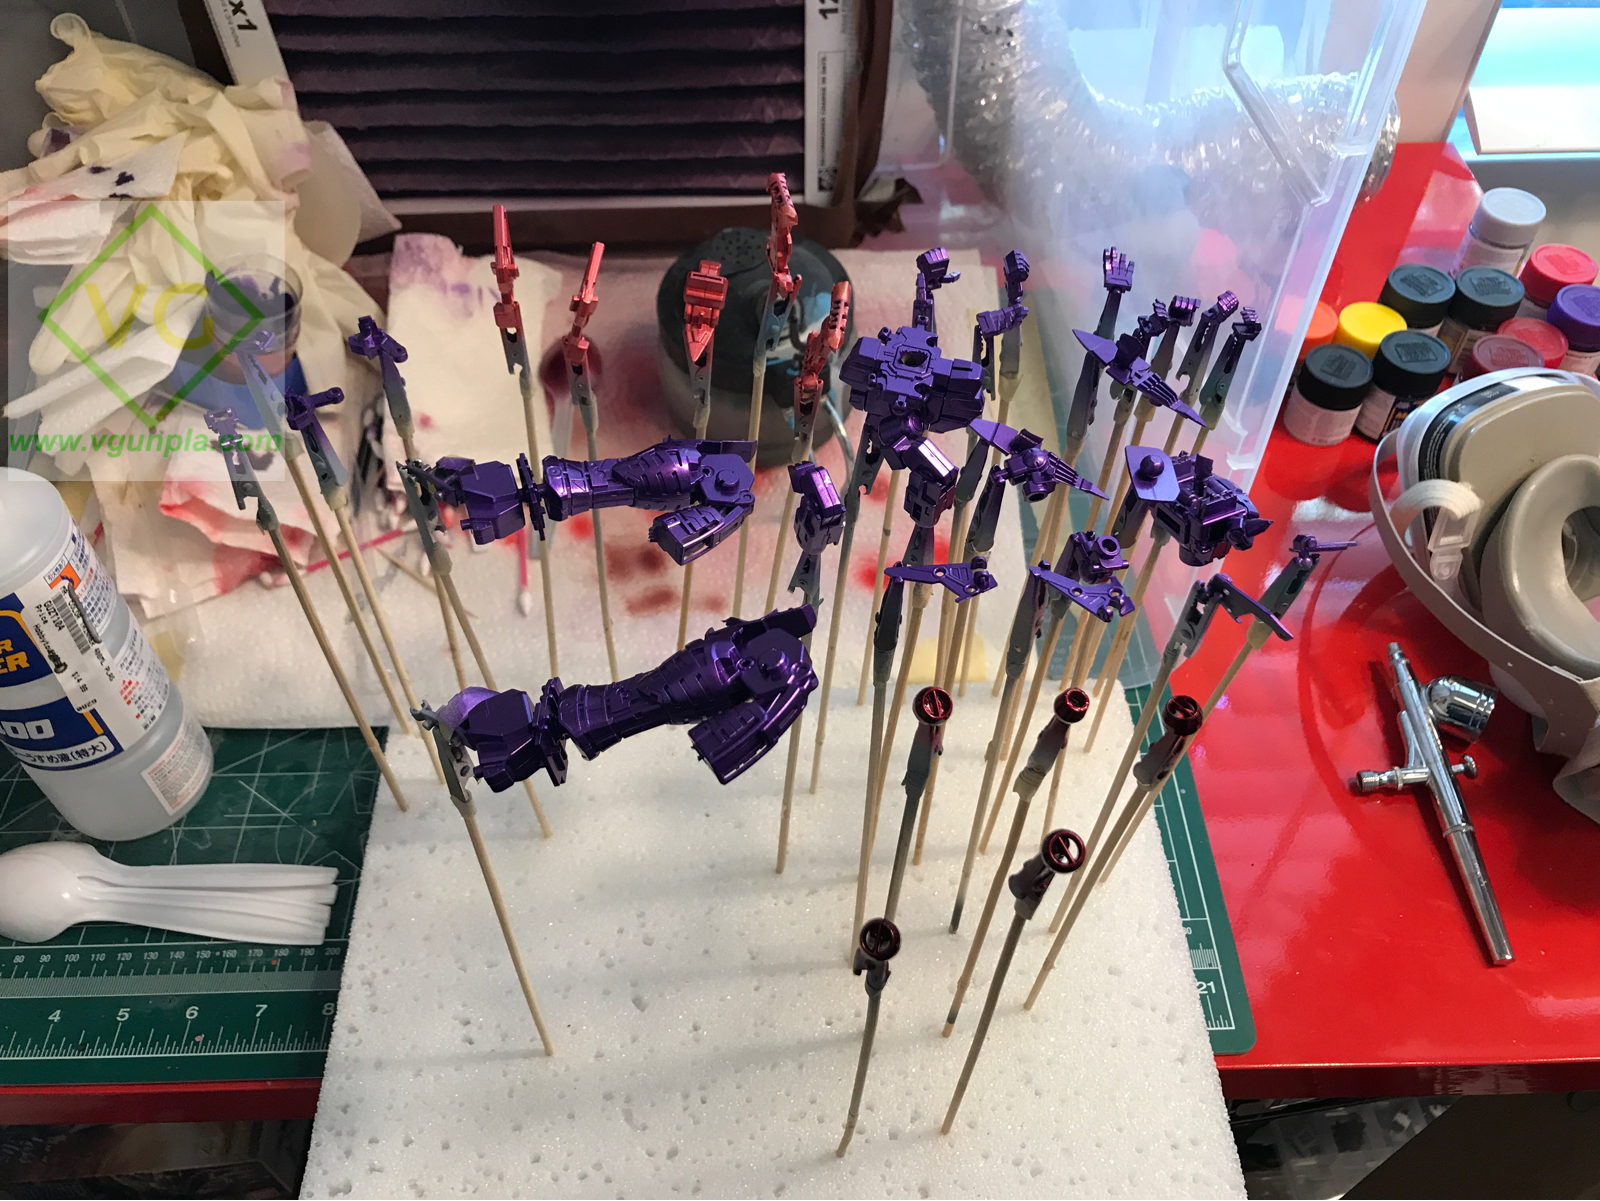 Look at that purple! I test fit some armor parts over the purple frame and it REALLY shines through! Purple was a bold choice but I think it will pay off in the end.